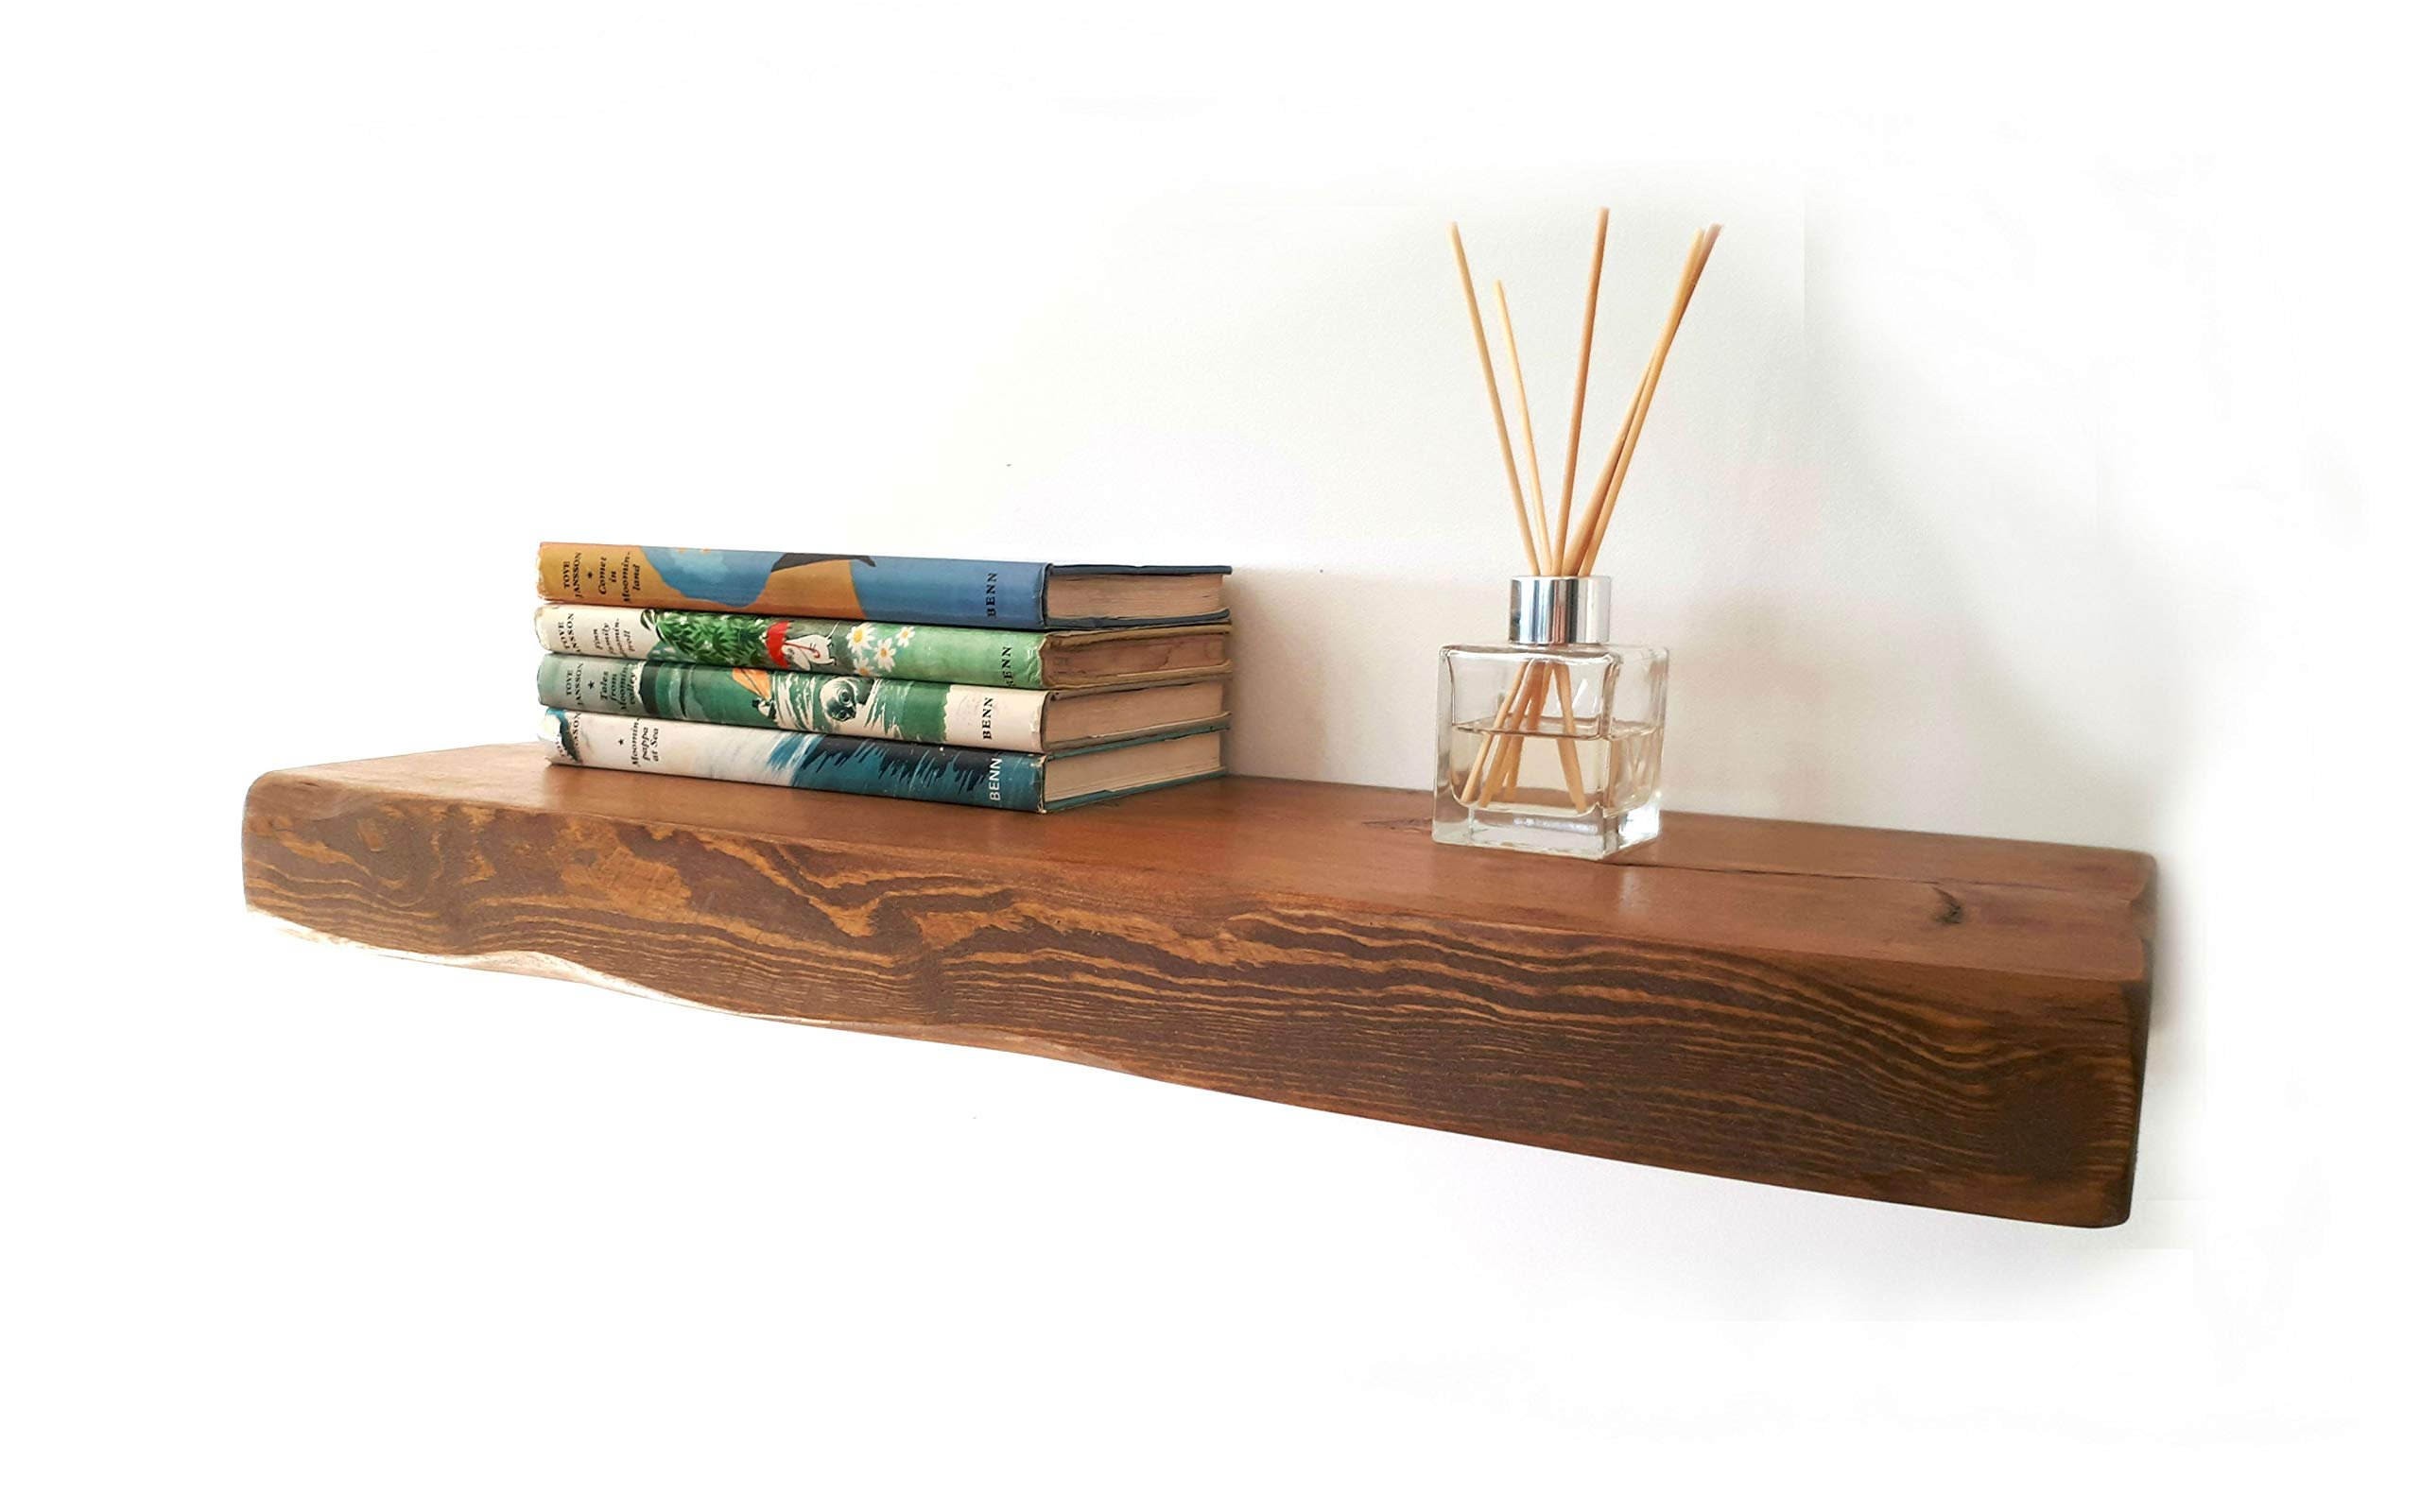 floating shelves reclaimed solid wood rustic wall shelf in medium oak finish 2 ft long perfect for living room kitchen bathroom office